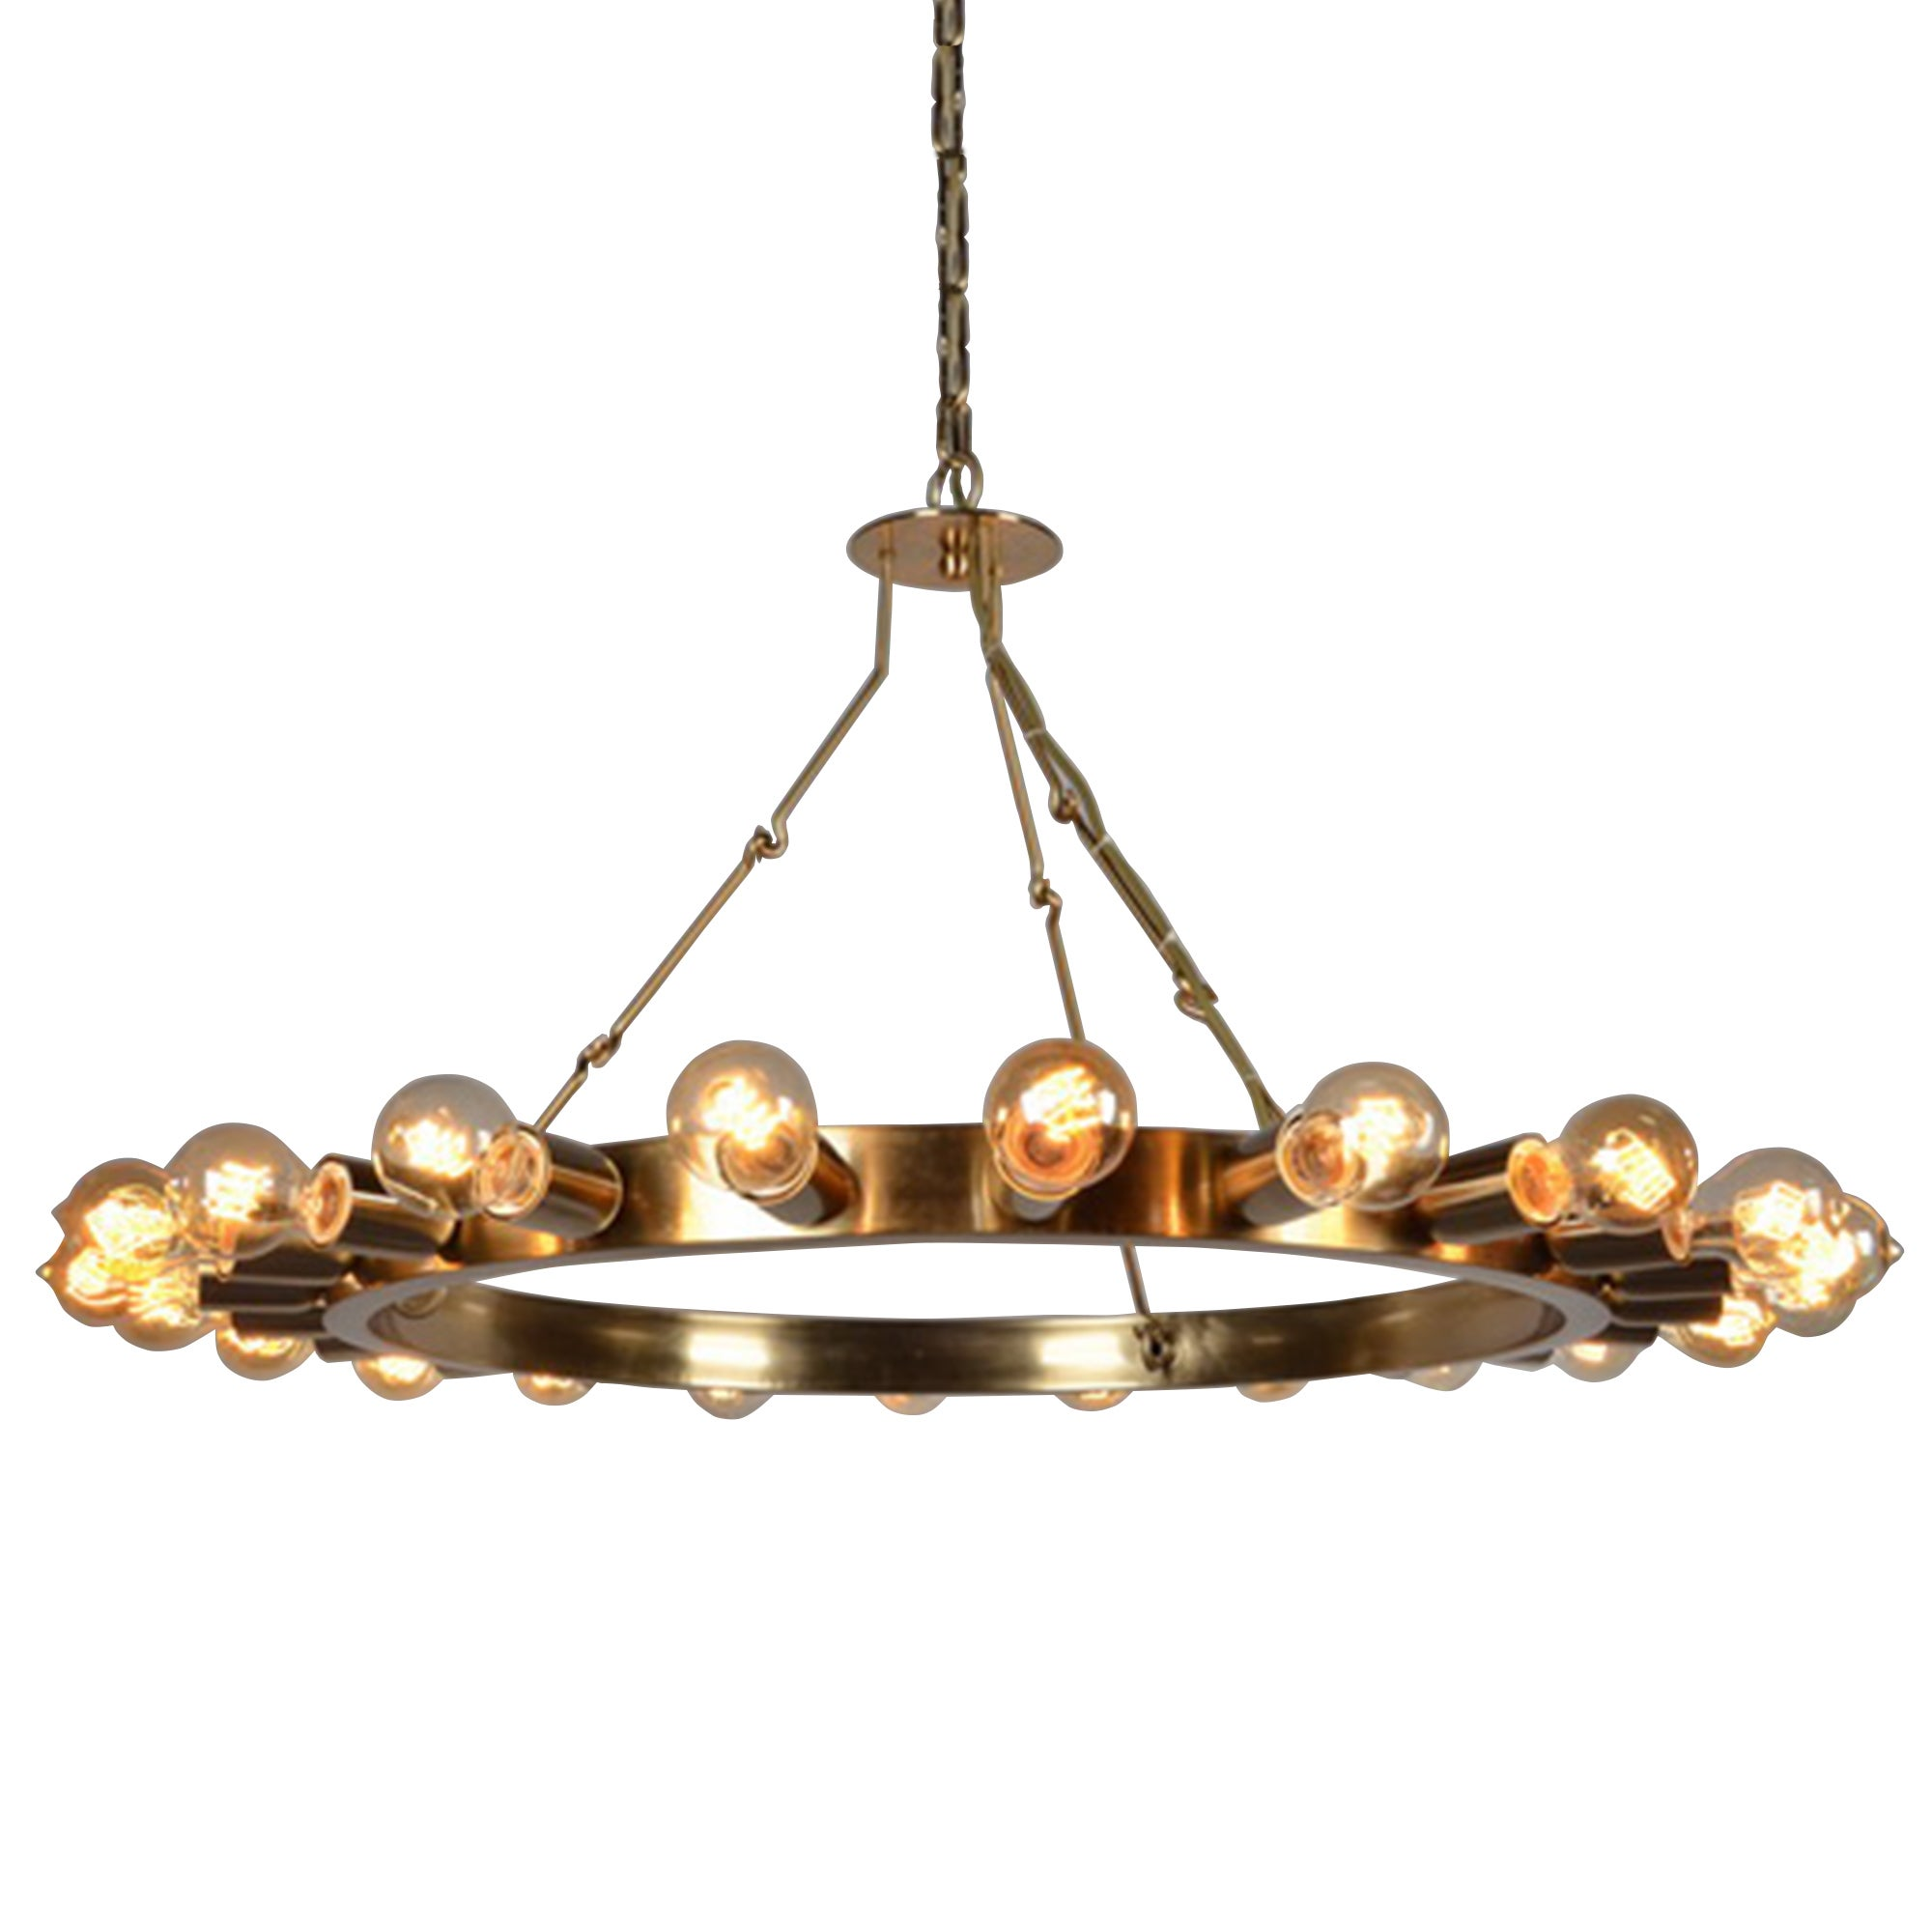 Y-Decor 'Raykovich' Iron Wagon Wheel Inspired 22-light Ch...